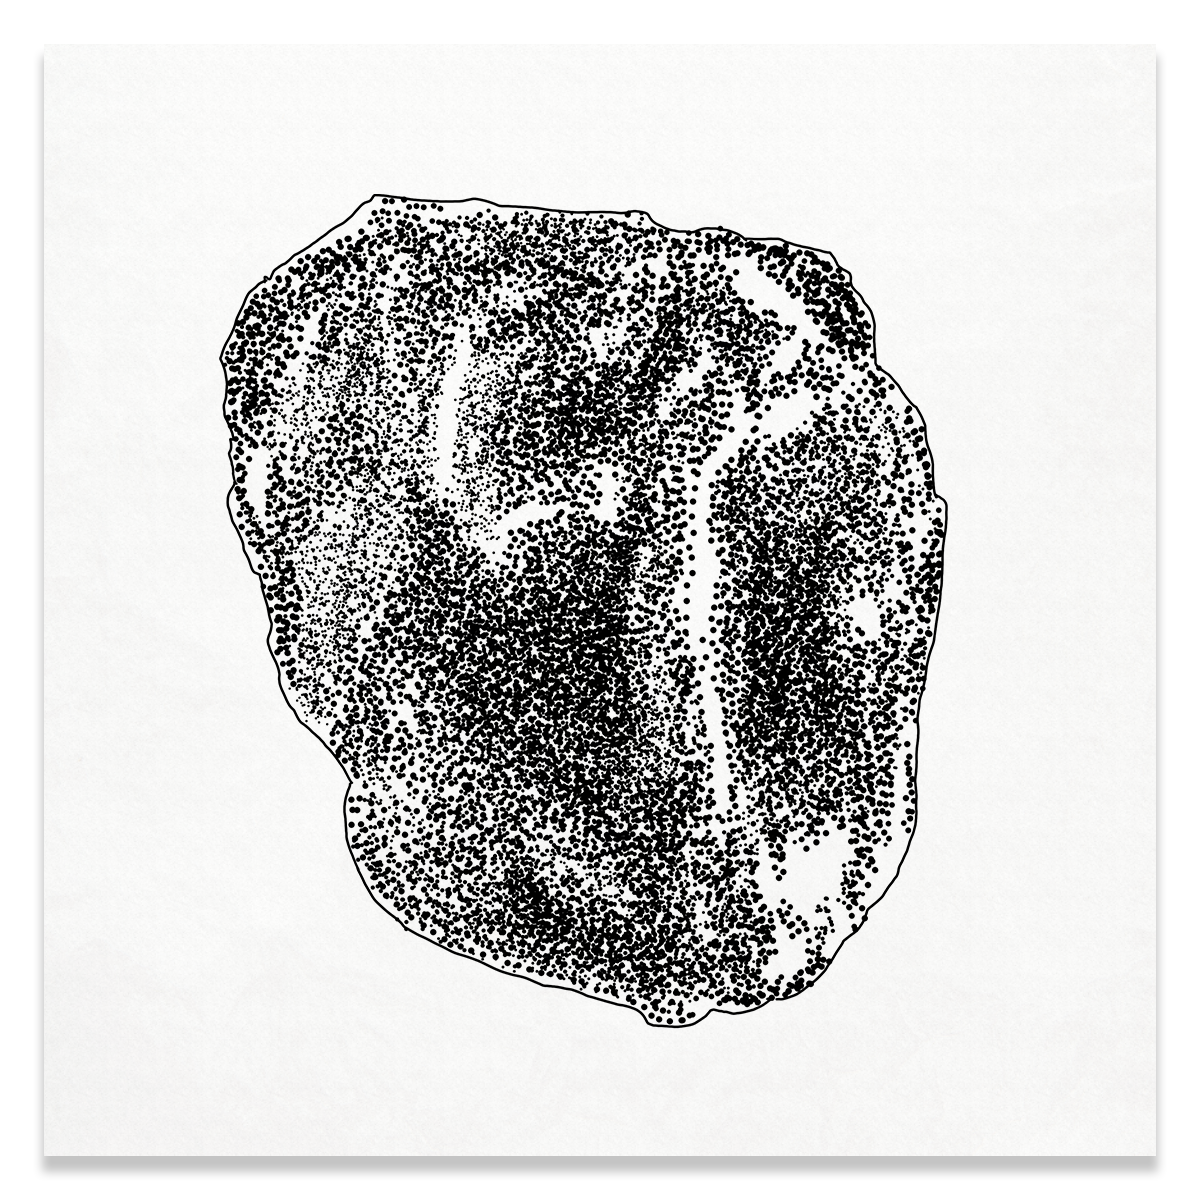 Stones_0001_2.png